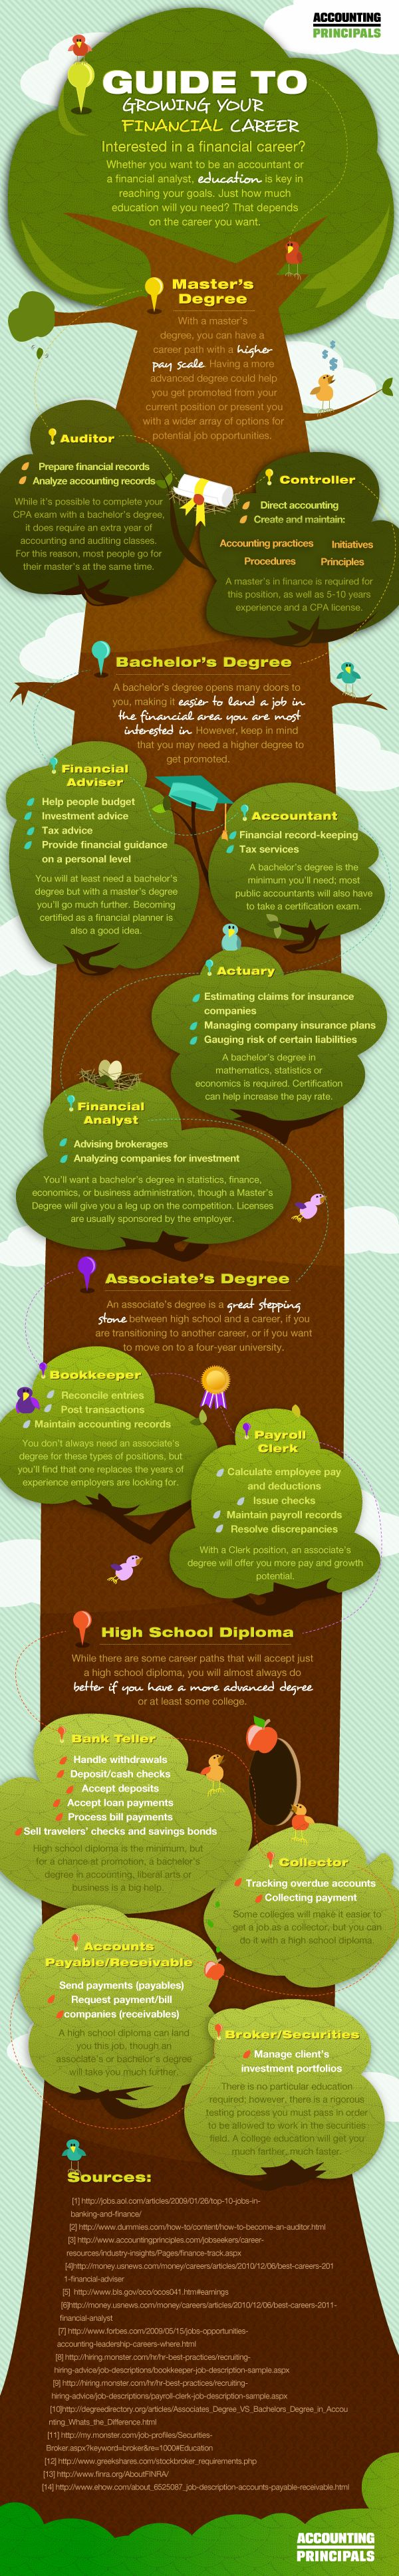 Finding your way to a financial career can be an overwhelming process. Did you know that there are many careers that will enable you to start in the financial sector without having a Master's or even a Bachelor's Degree?